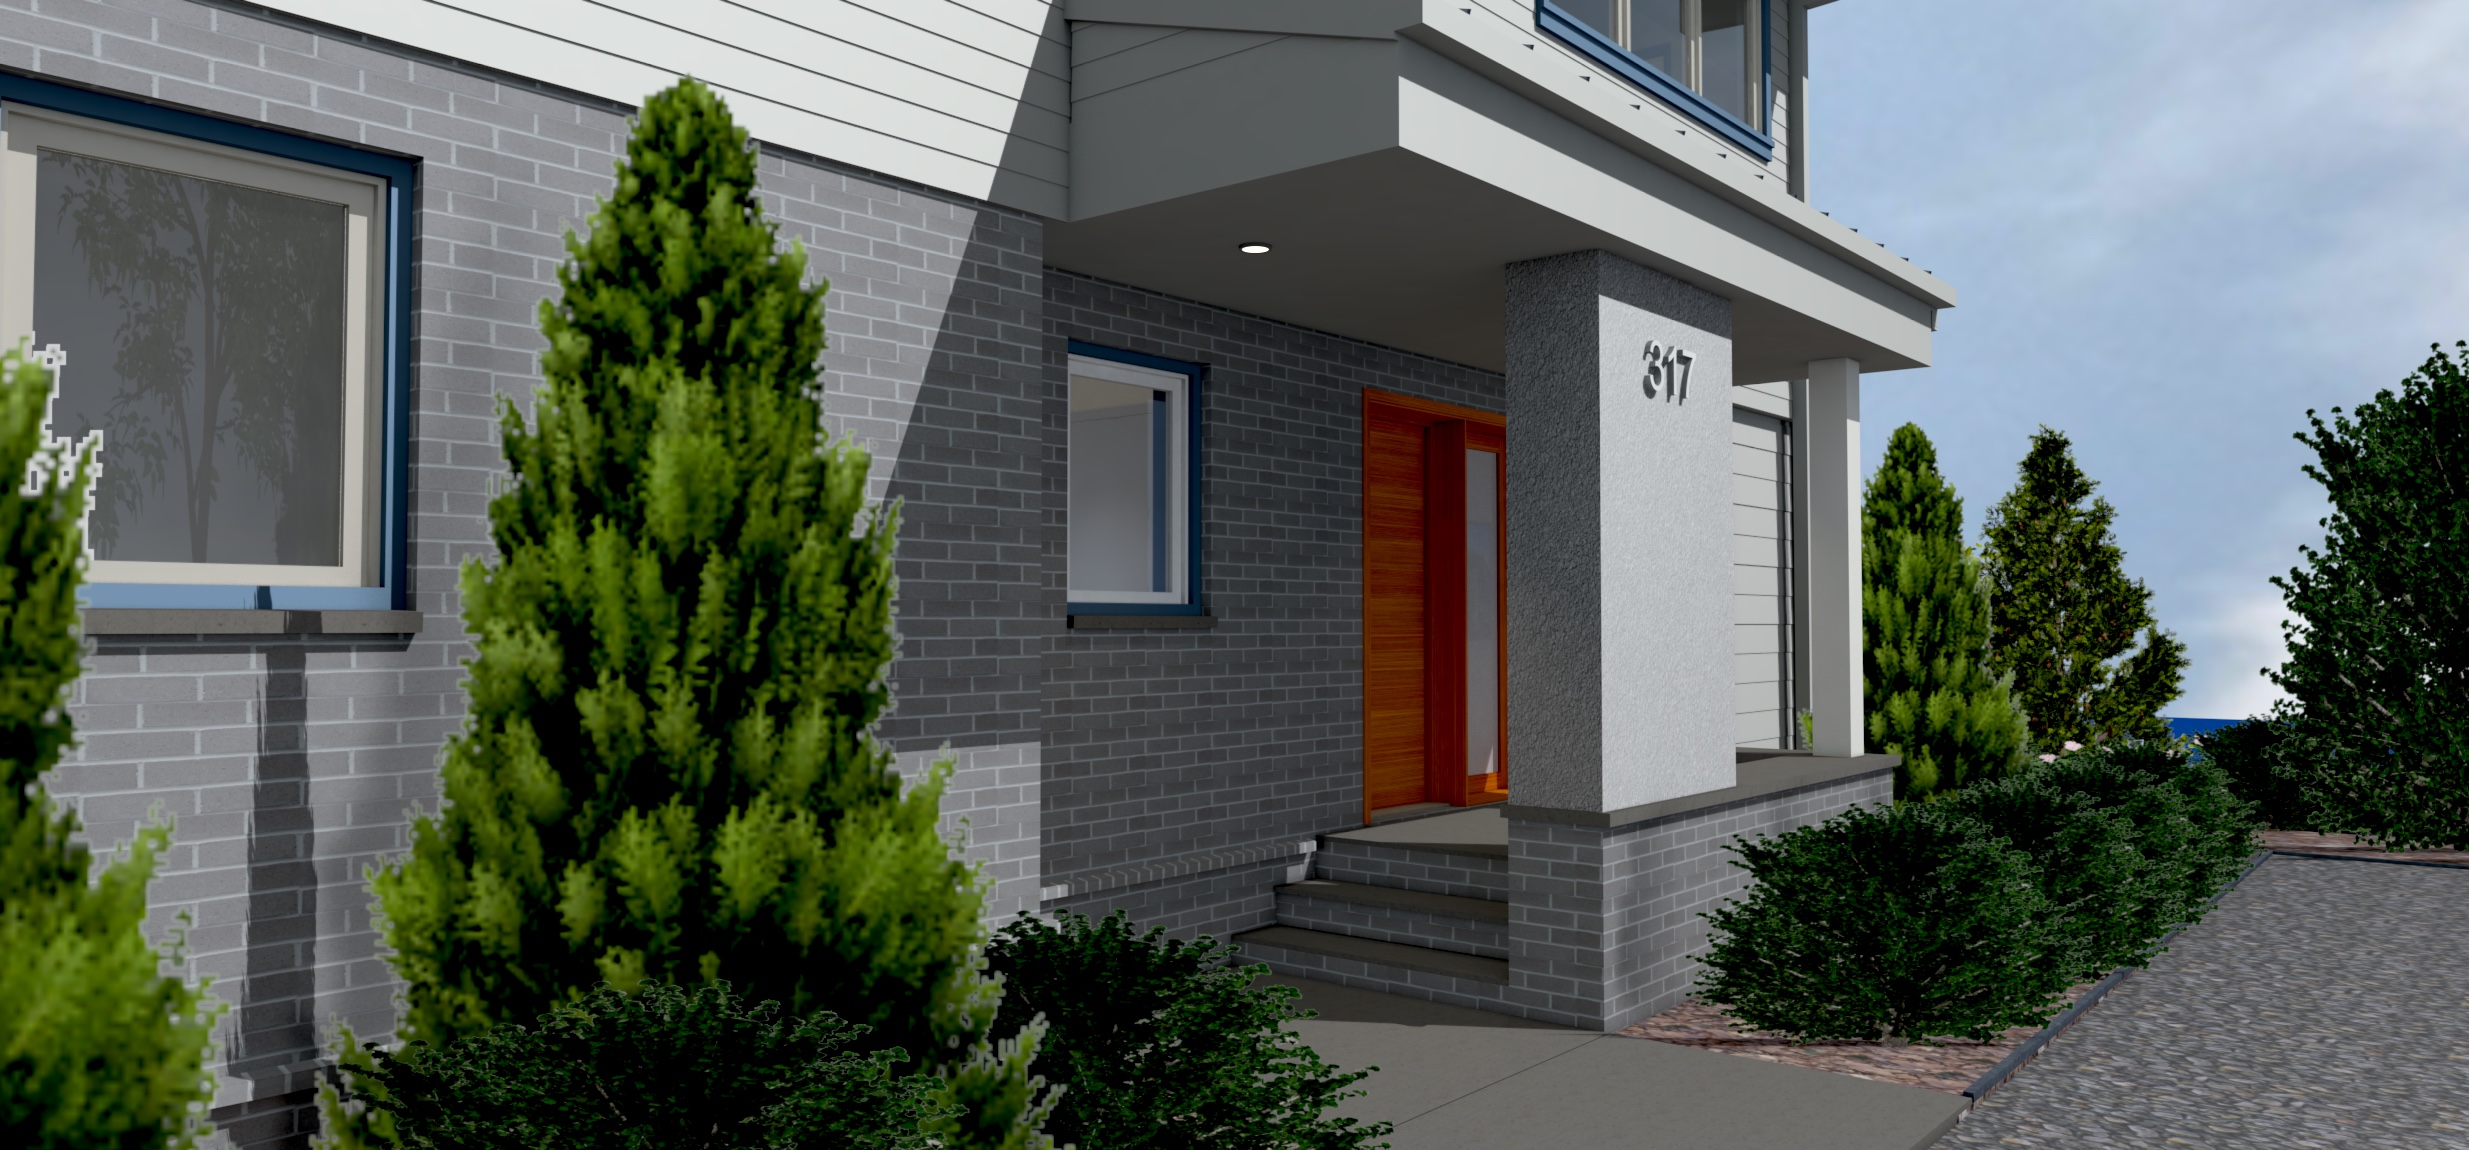 South Entry Porch Perspective Rendering